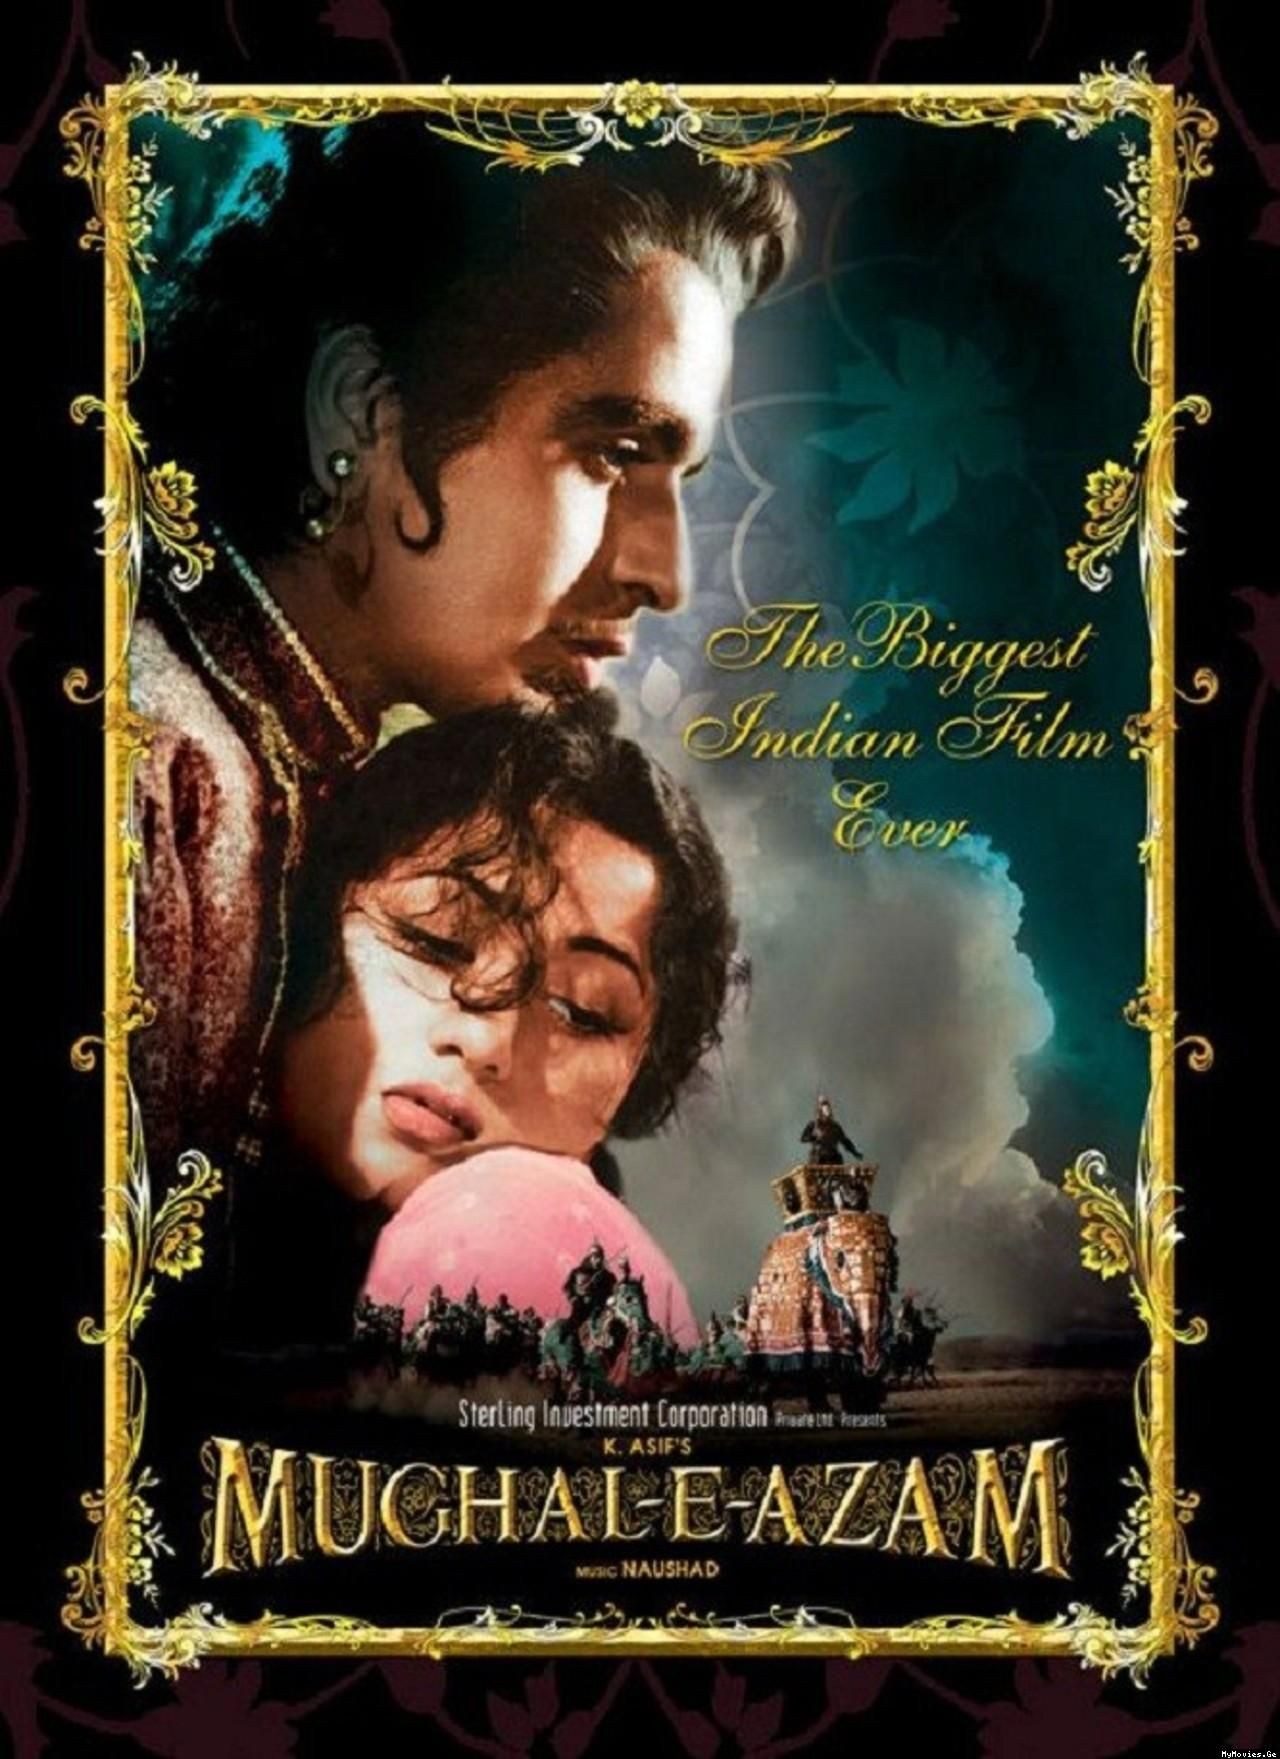 Mughal-E-Azam - August 5, 1960 | The well